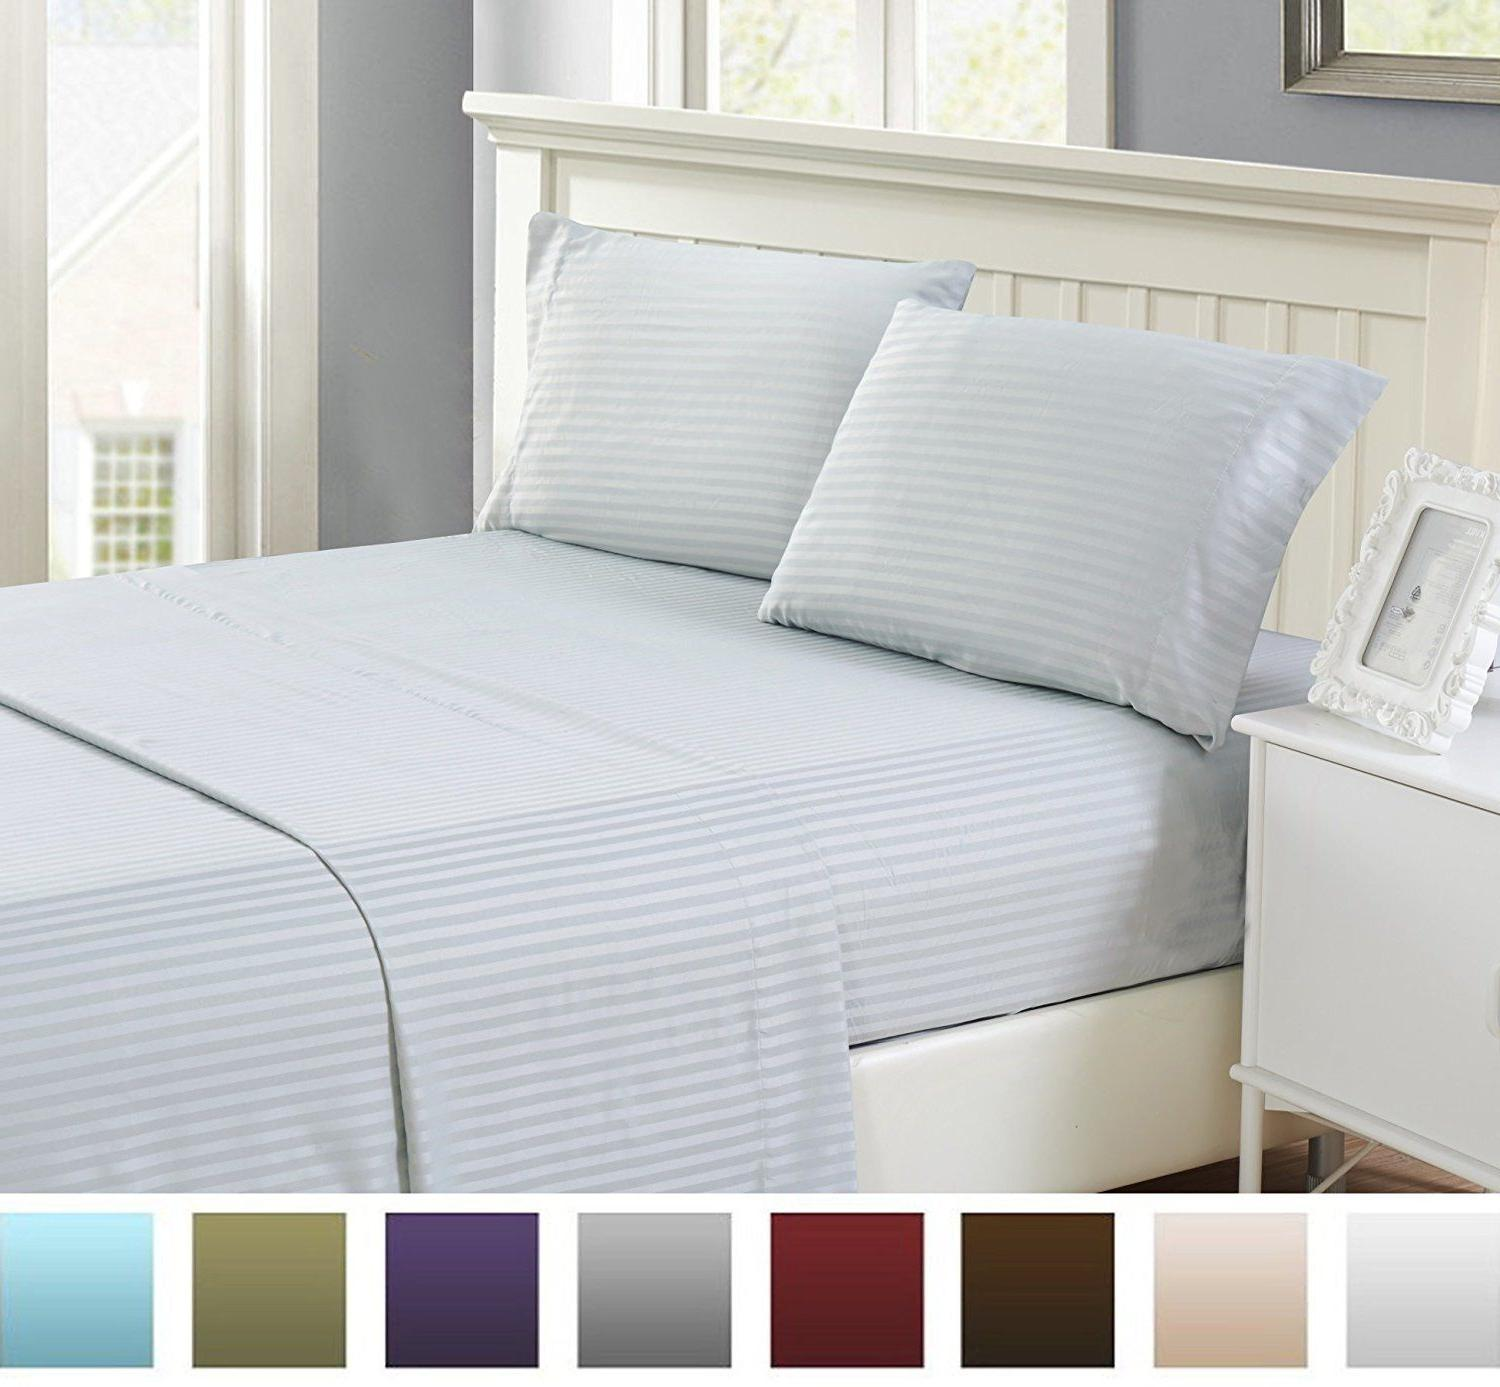 Bed Set High Egyptian Quality Home Striped